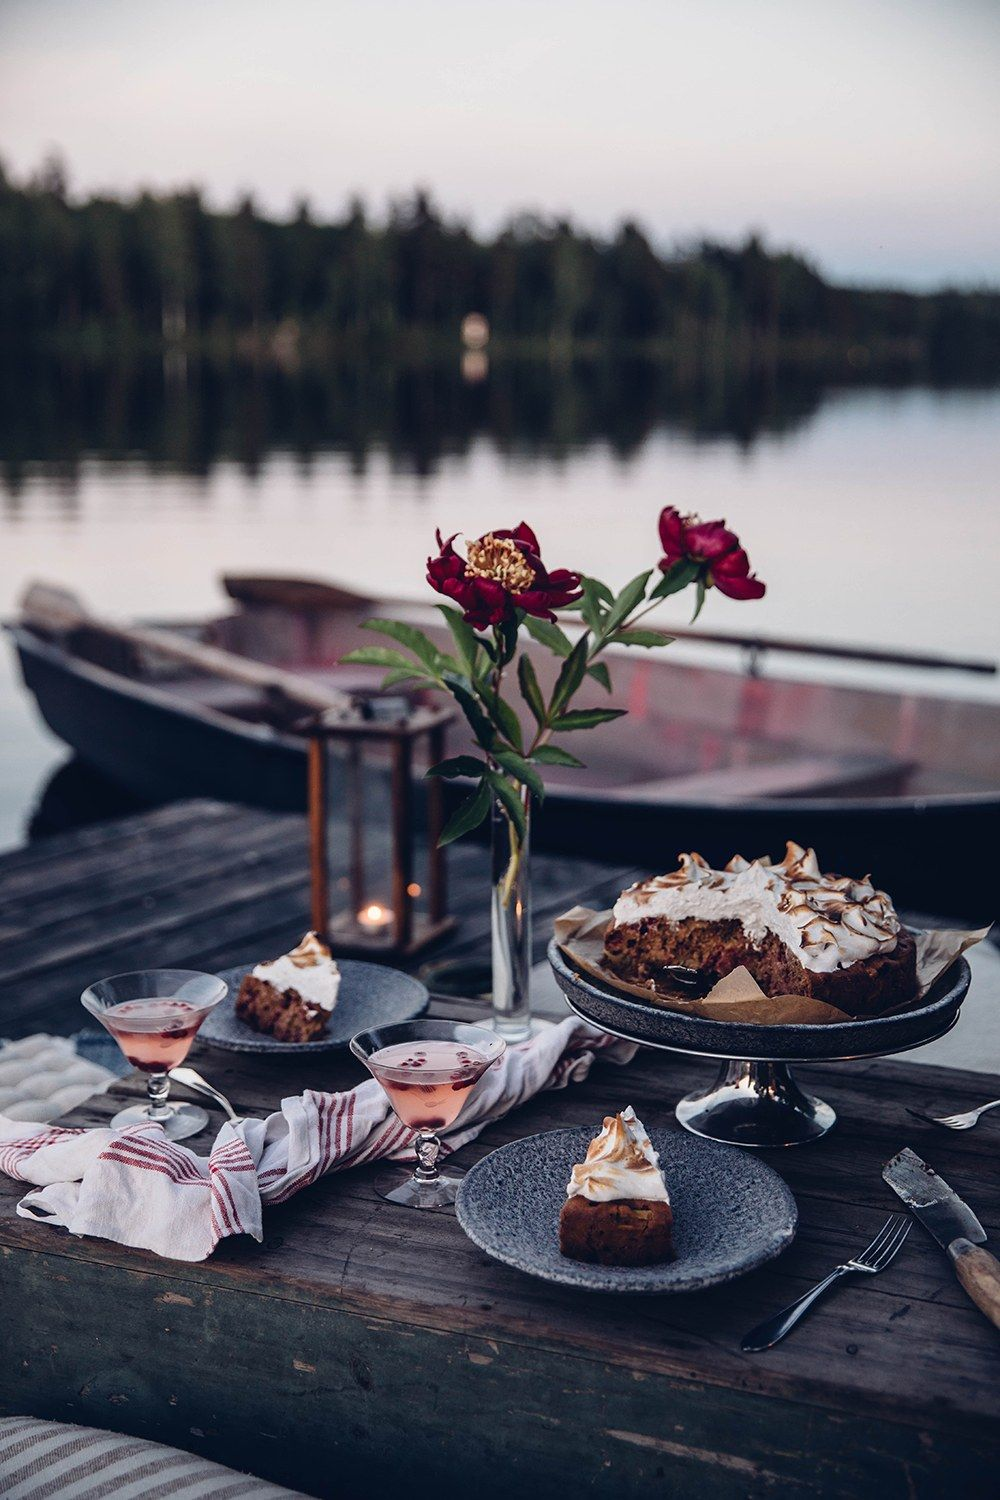 Moon Picnic in Sweden at the Lake - & a delicious Rhubarb-Lingonberry-Cake with Meringue #lifestories